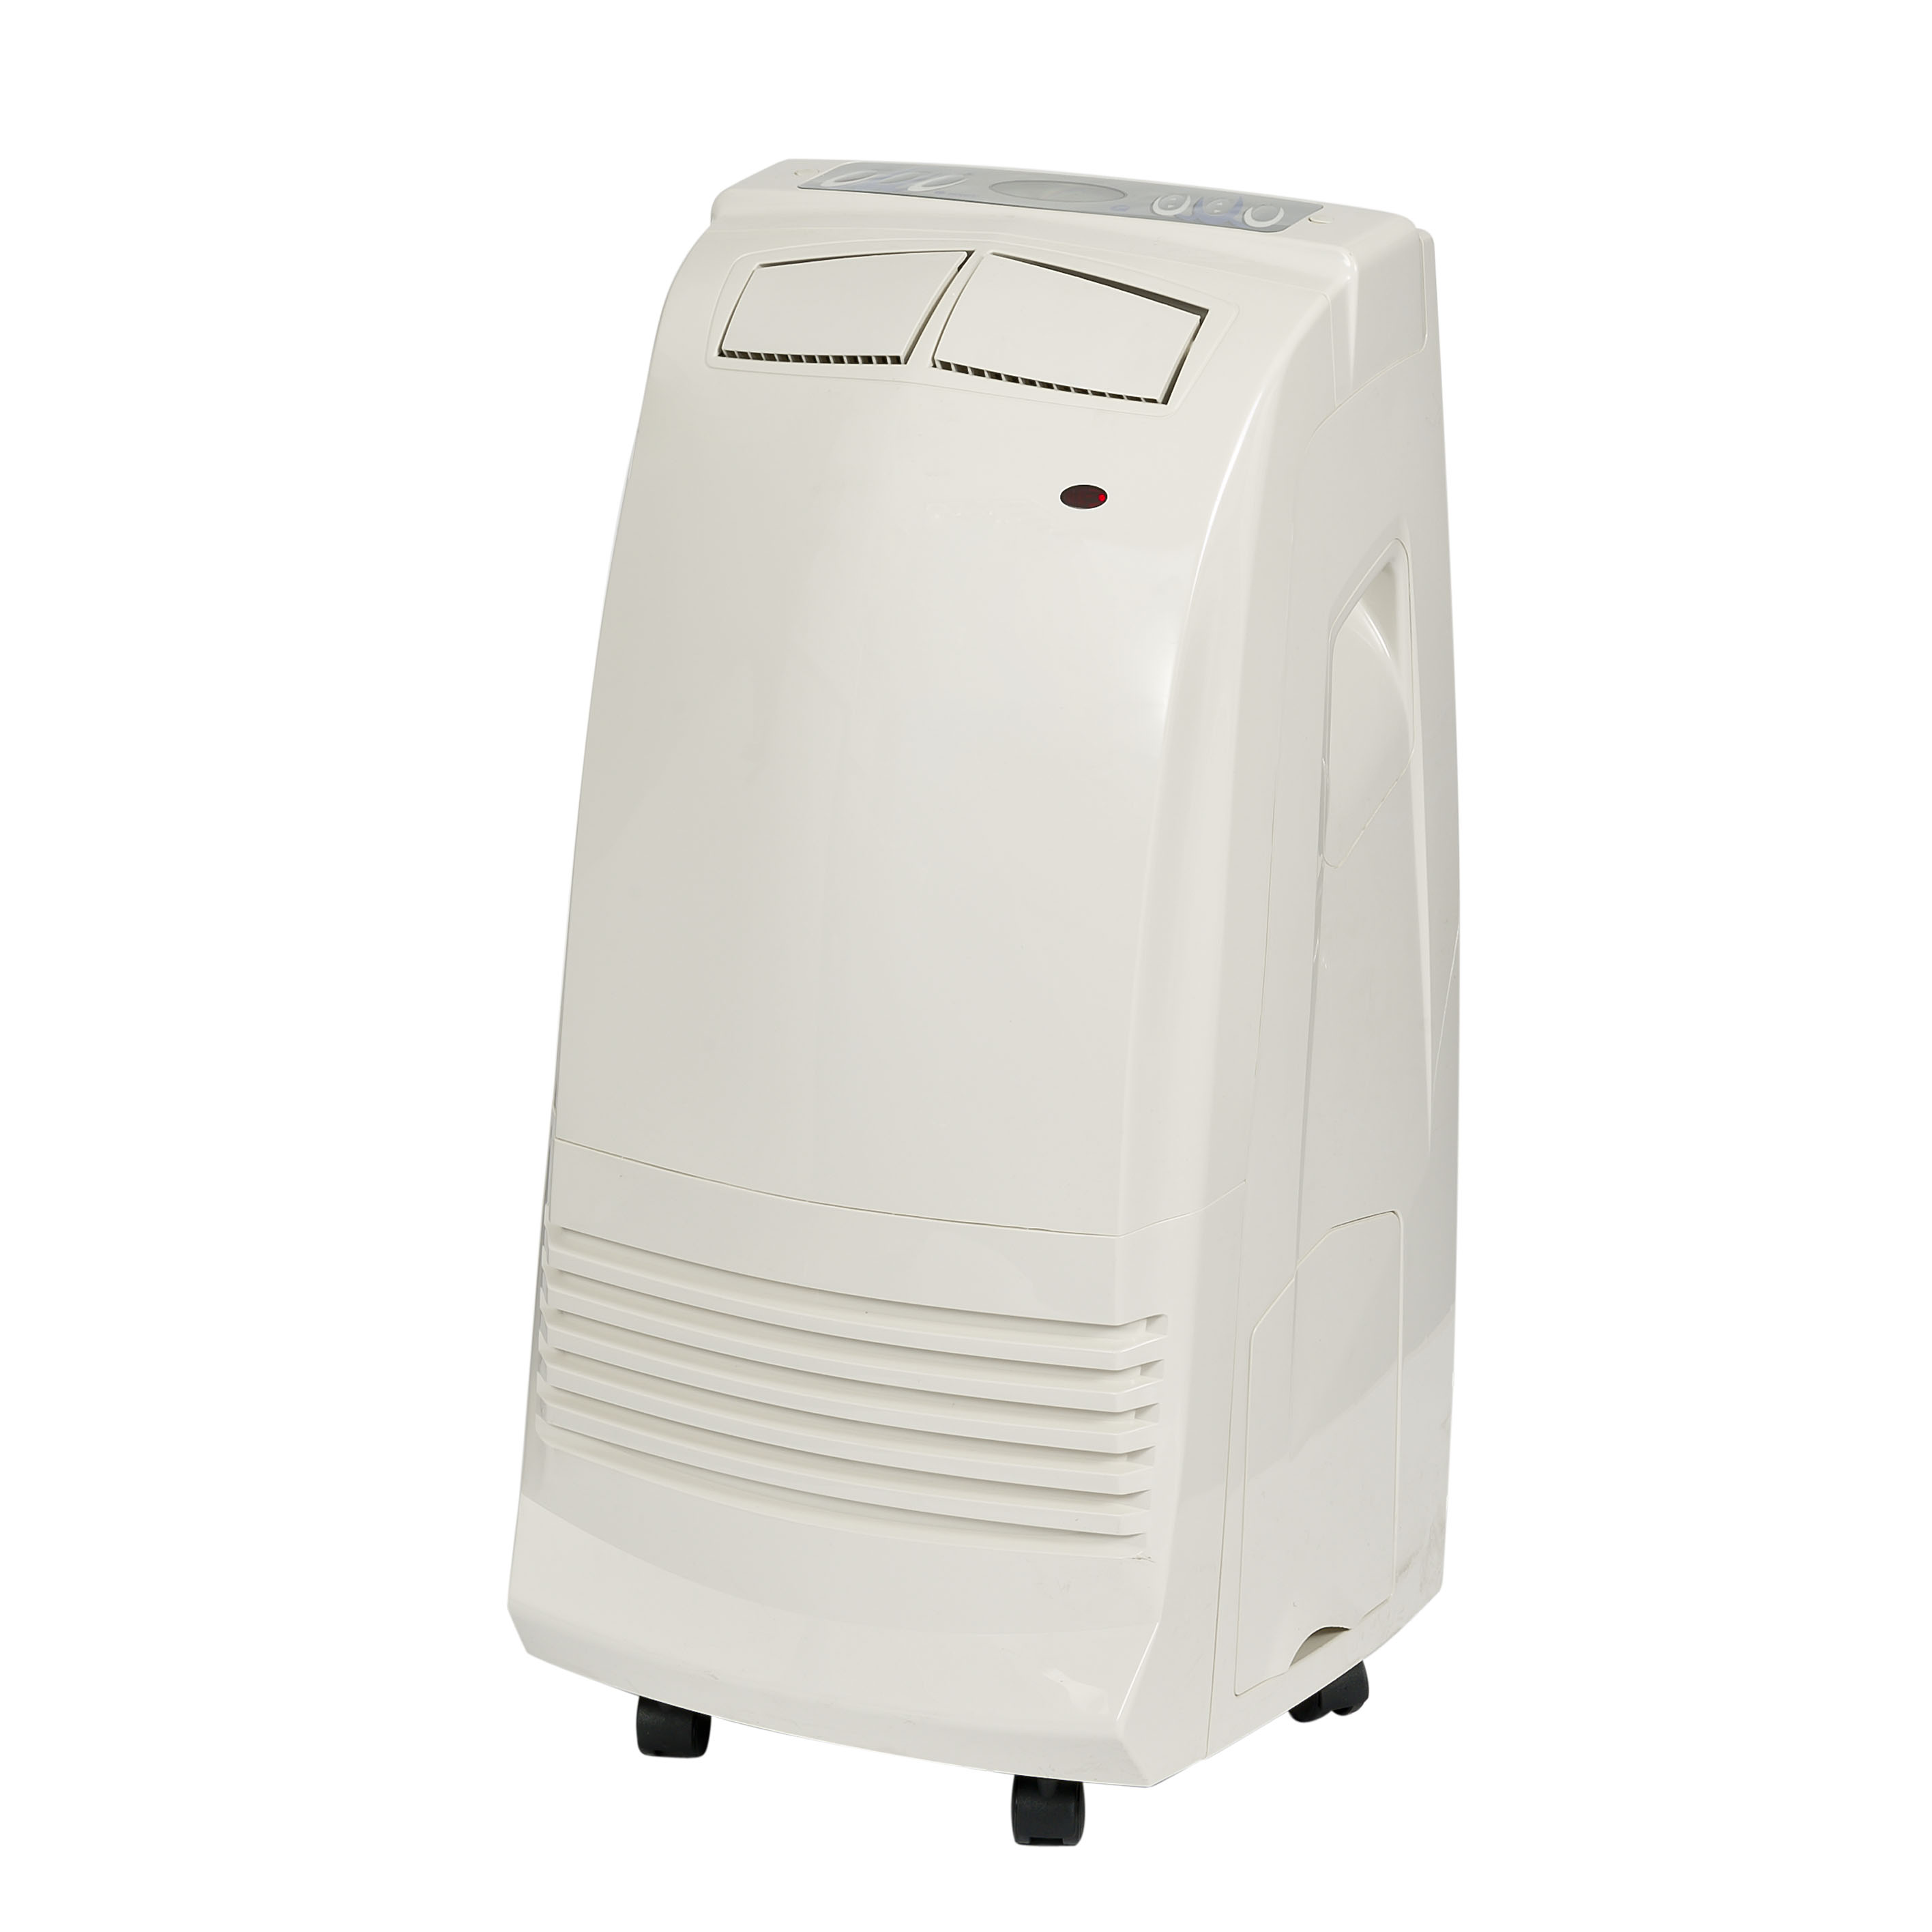 crs 3.5kw portable air conditioner manual